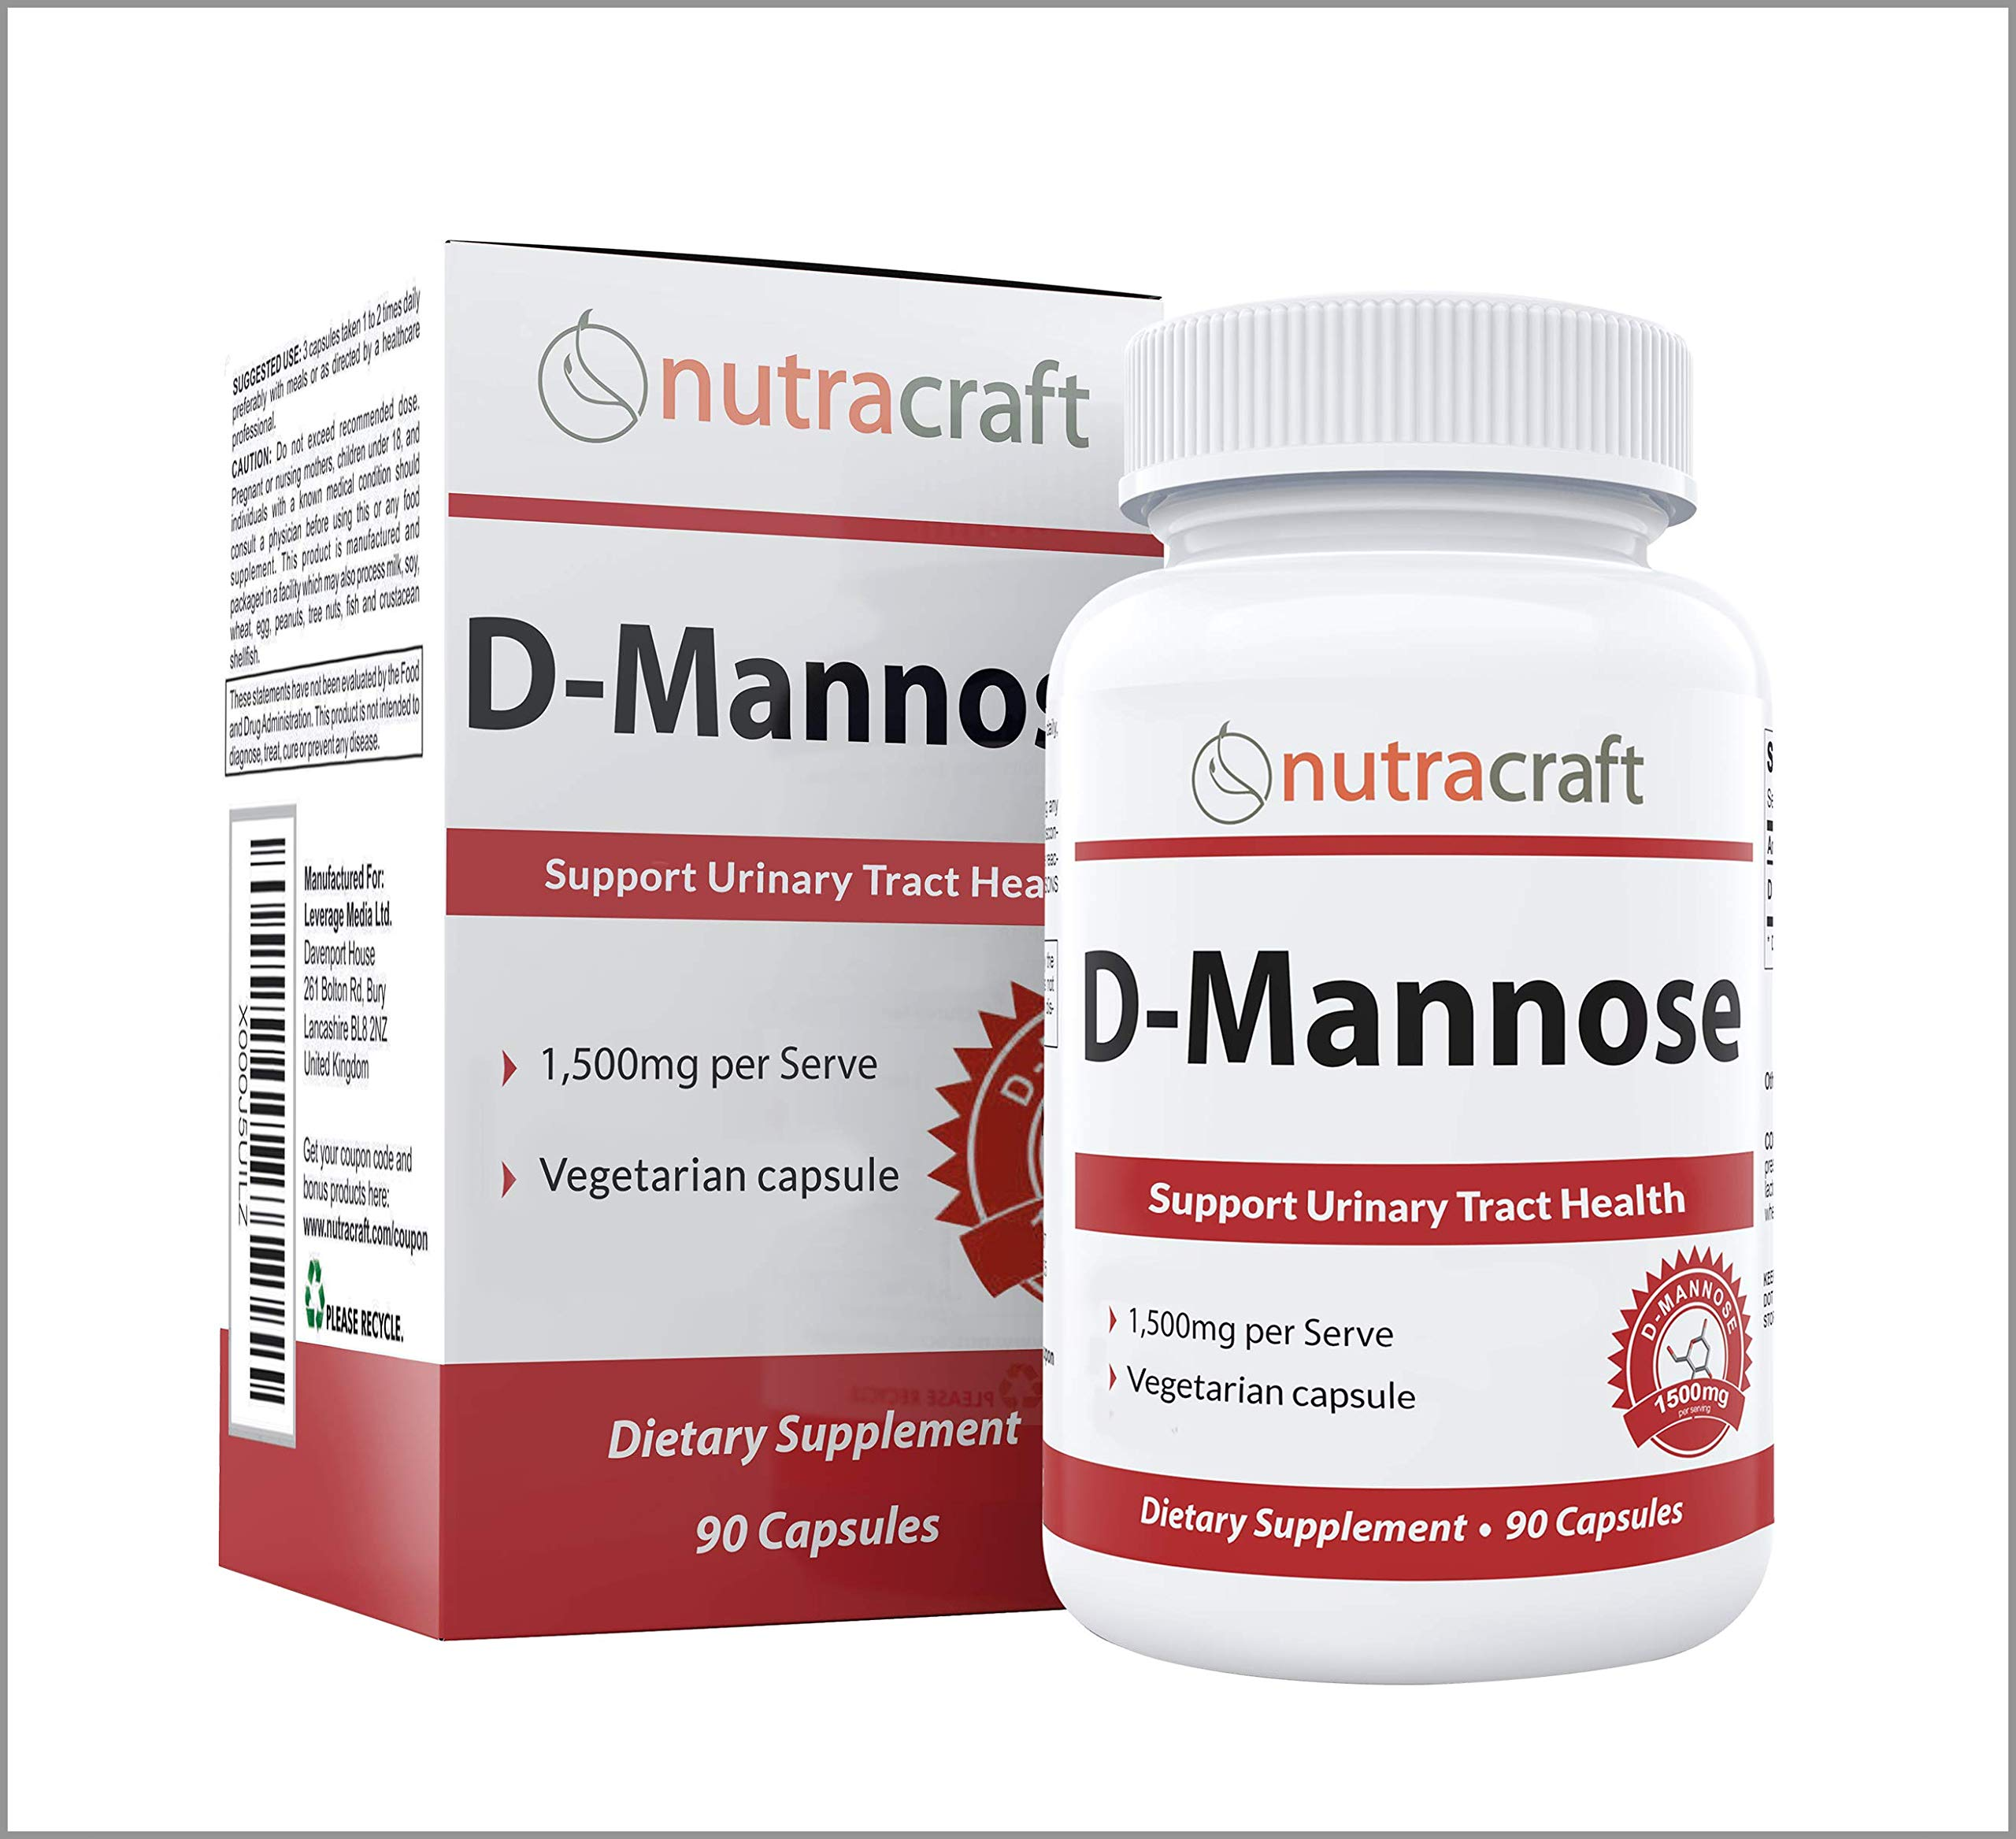 100% Pure D-Mannose Supplement - Combat Urinary Tract Infections & Support Bladder Health - 1500mg Per Serve - No Preservatives or Gluten - Made in The USA - 90 Vegetarian Capsules by Nutracraft